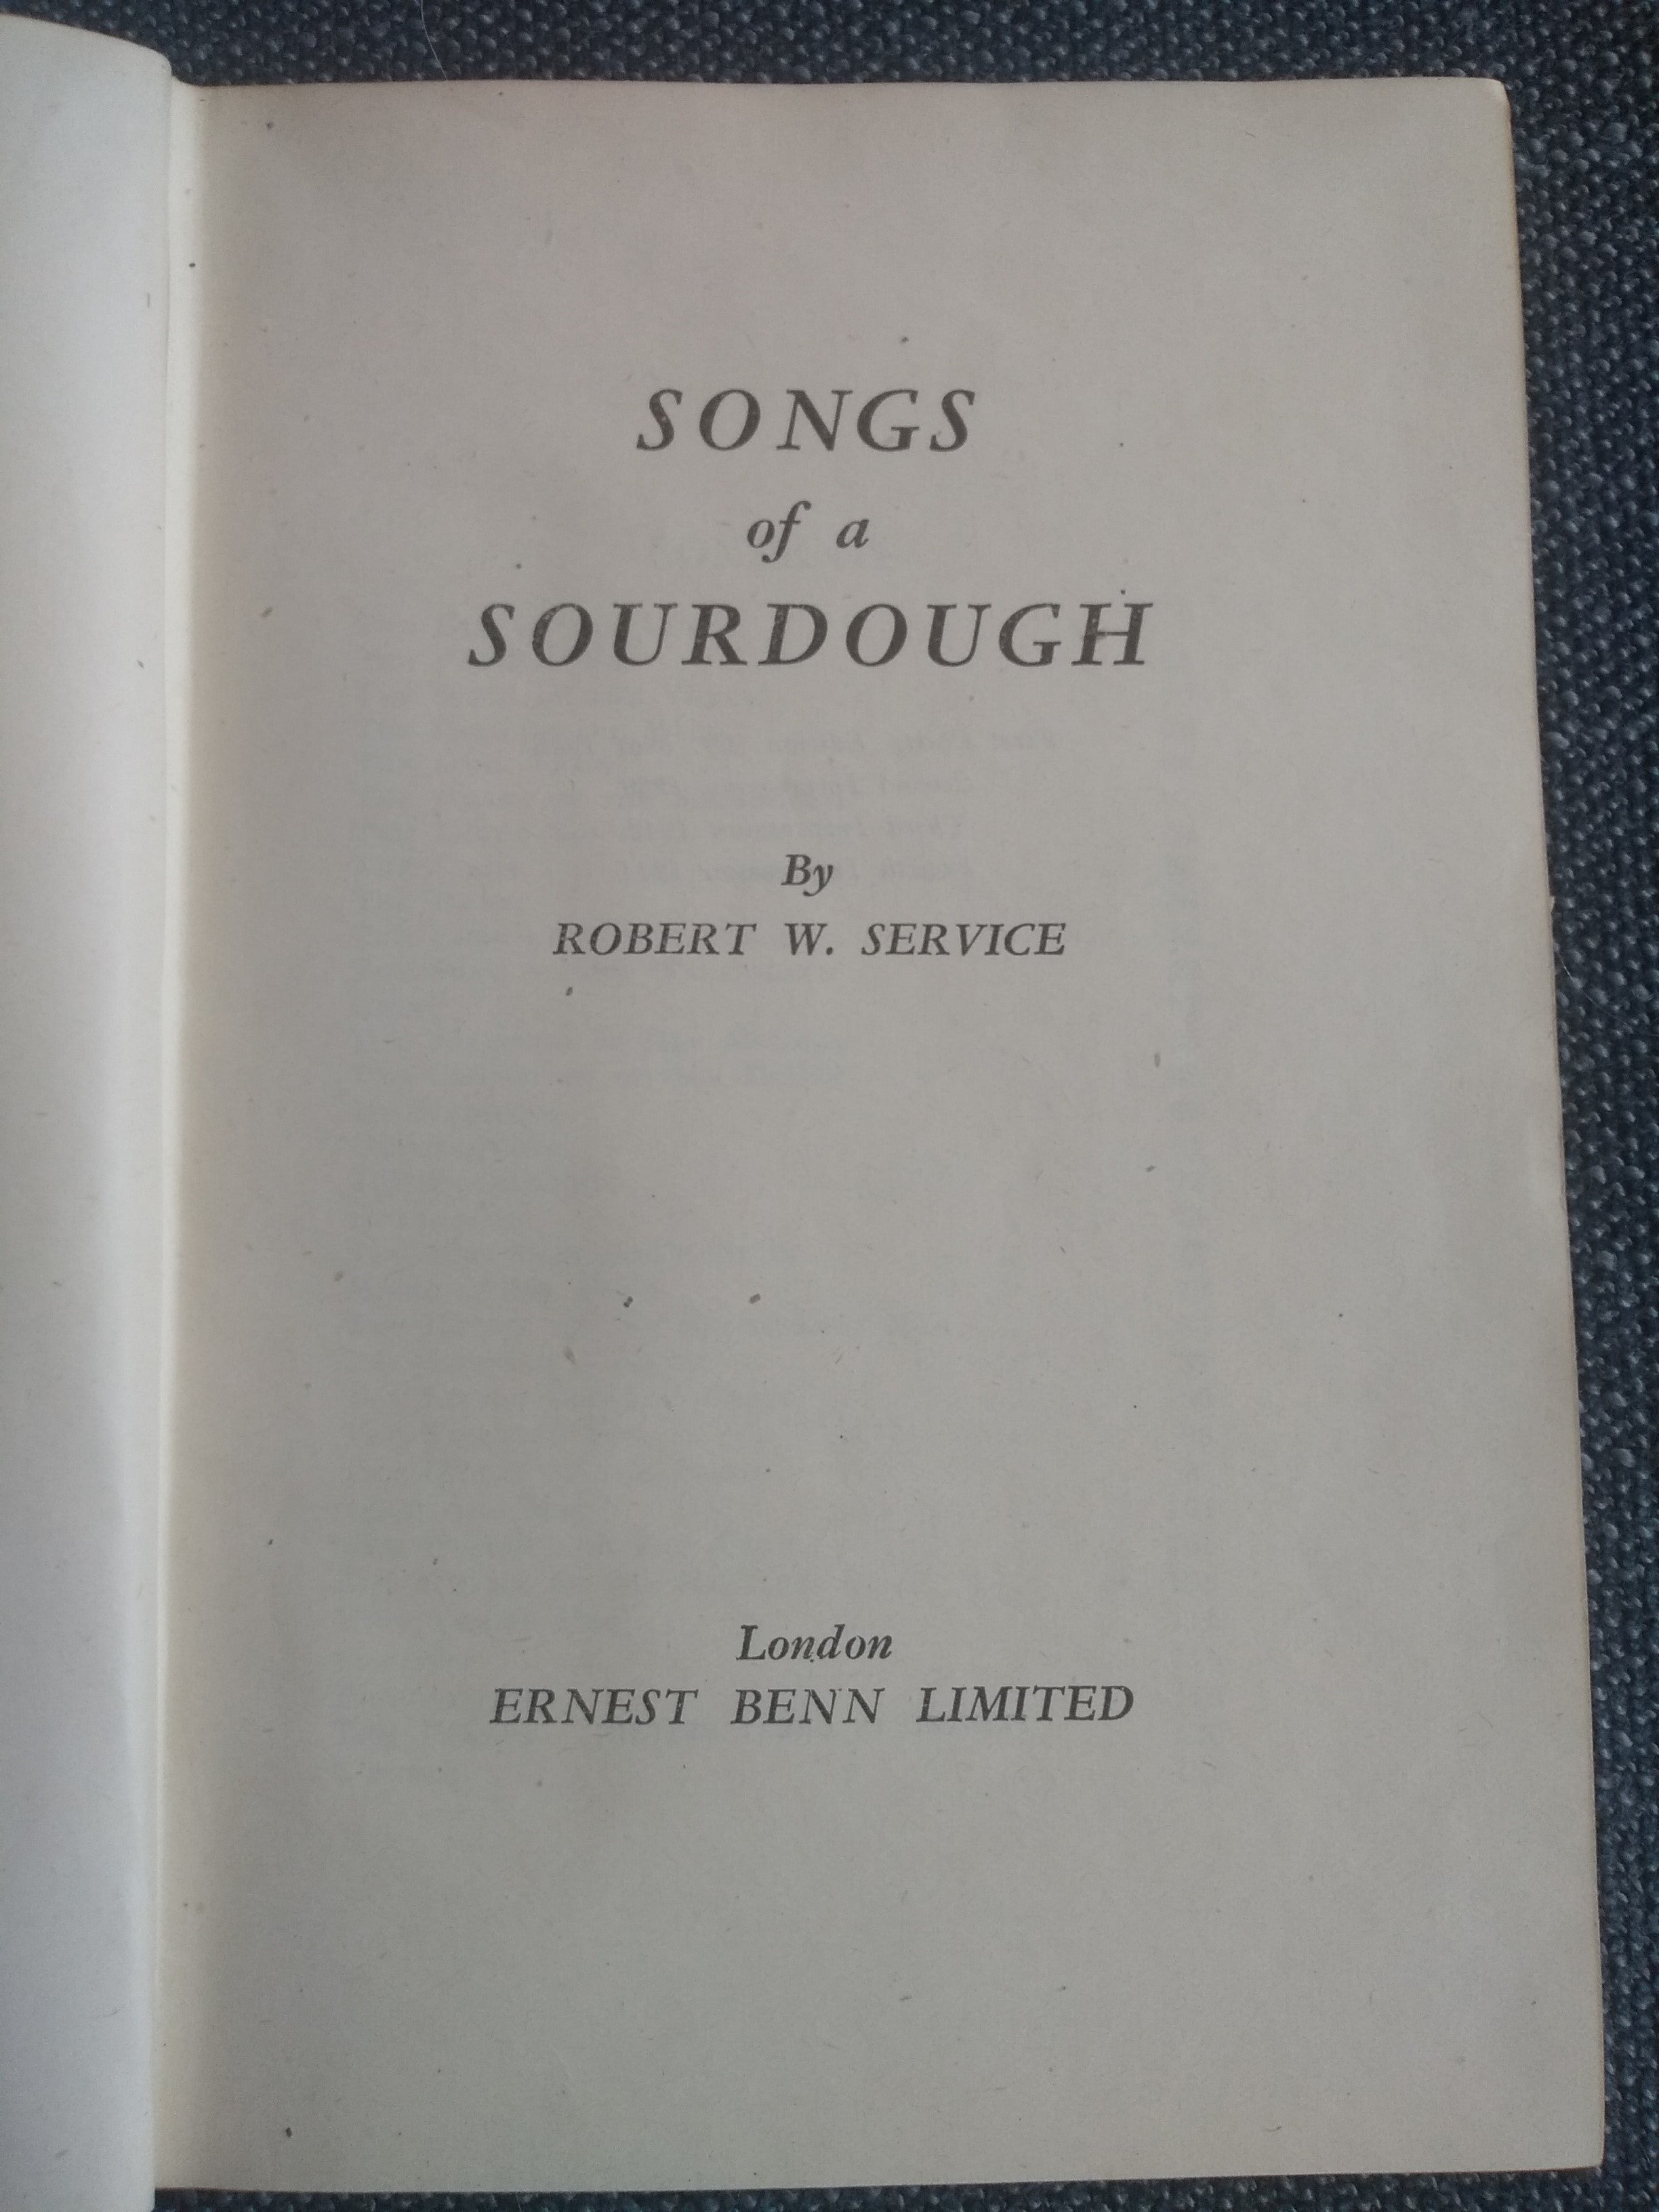 Songs of a Sourdough, by Robert Service